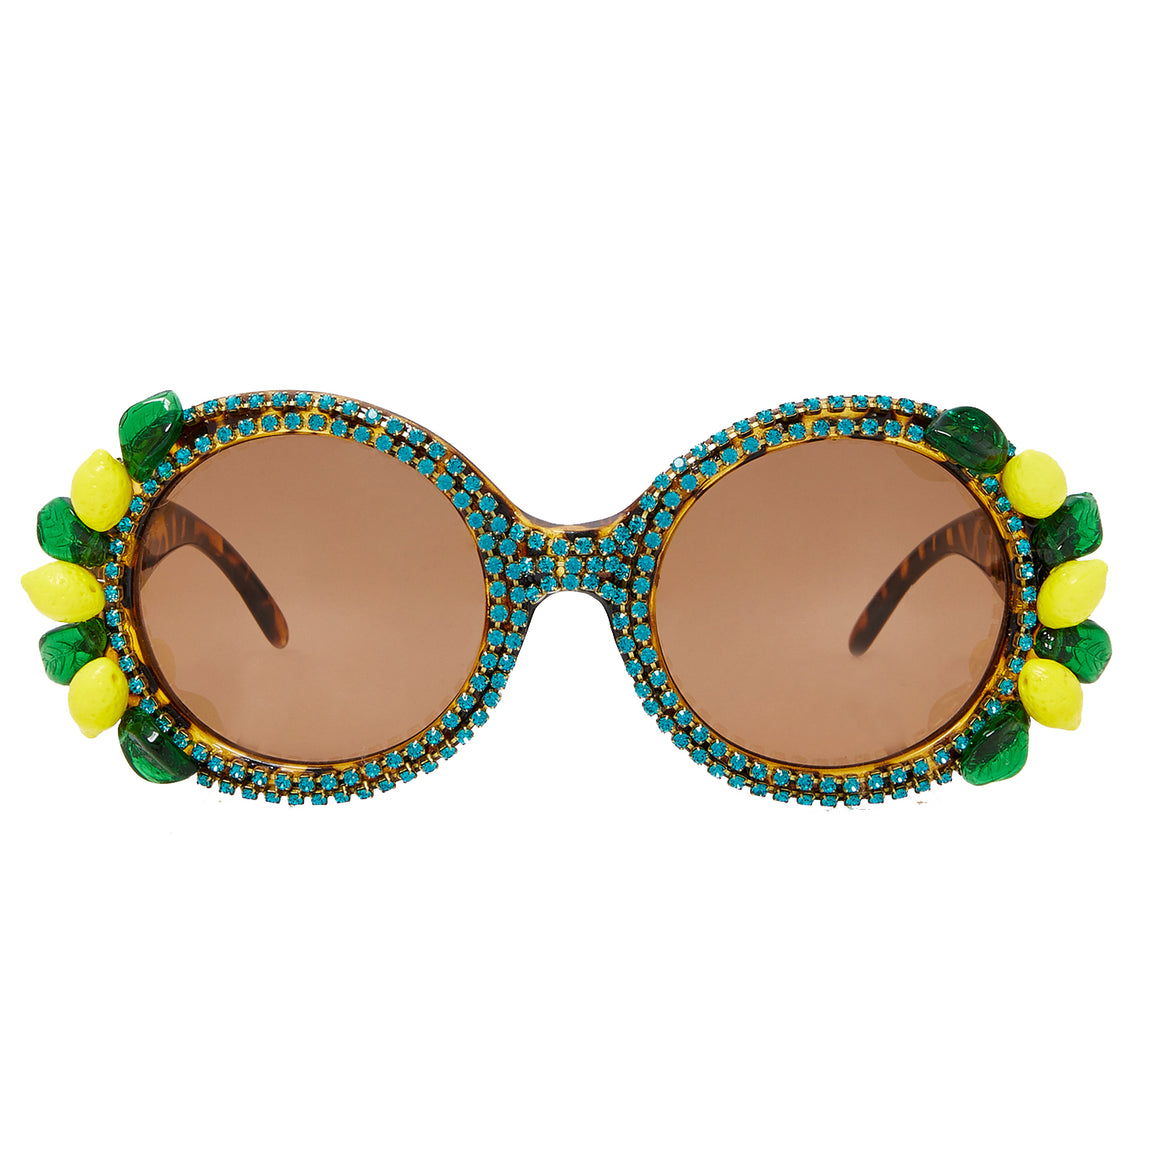 A-Morir Eyewear - Blue Lagoon Round Frame With Crystal Chain and Glass Fruit Beads